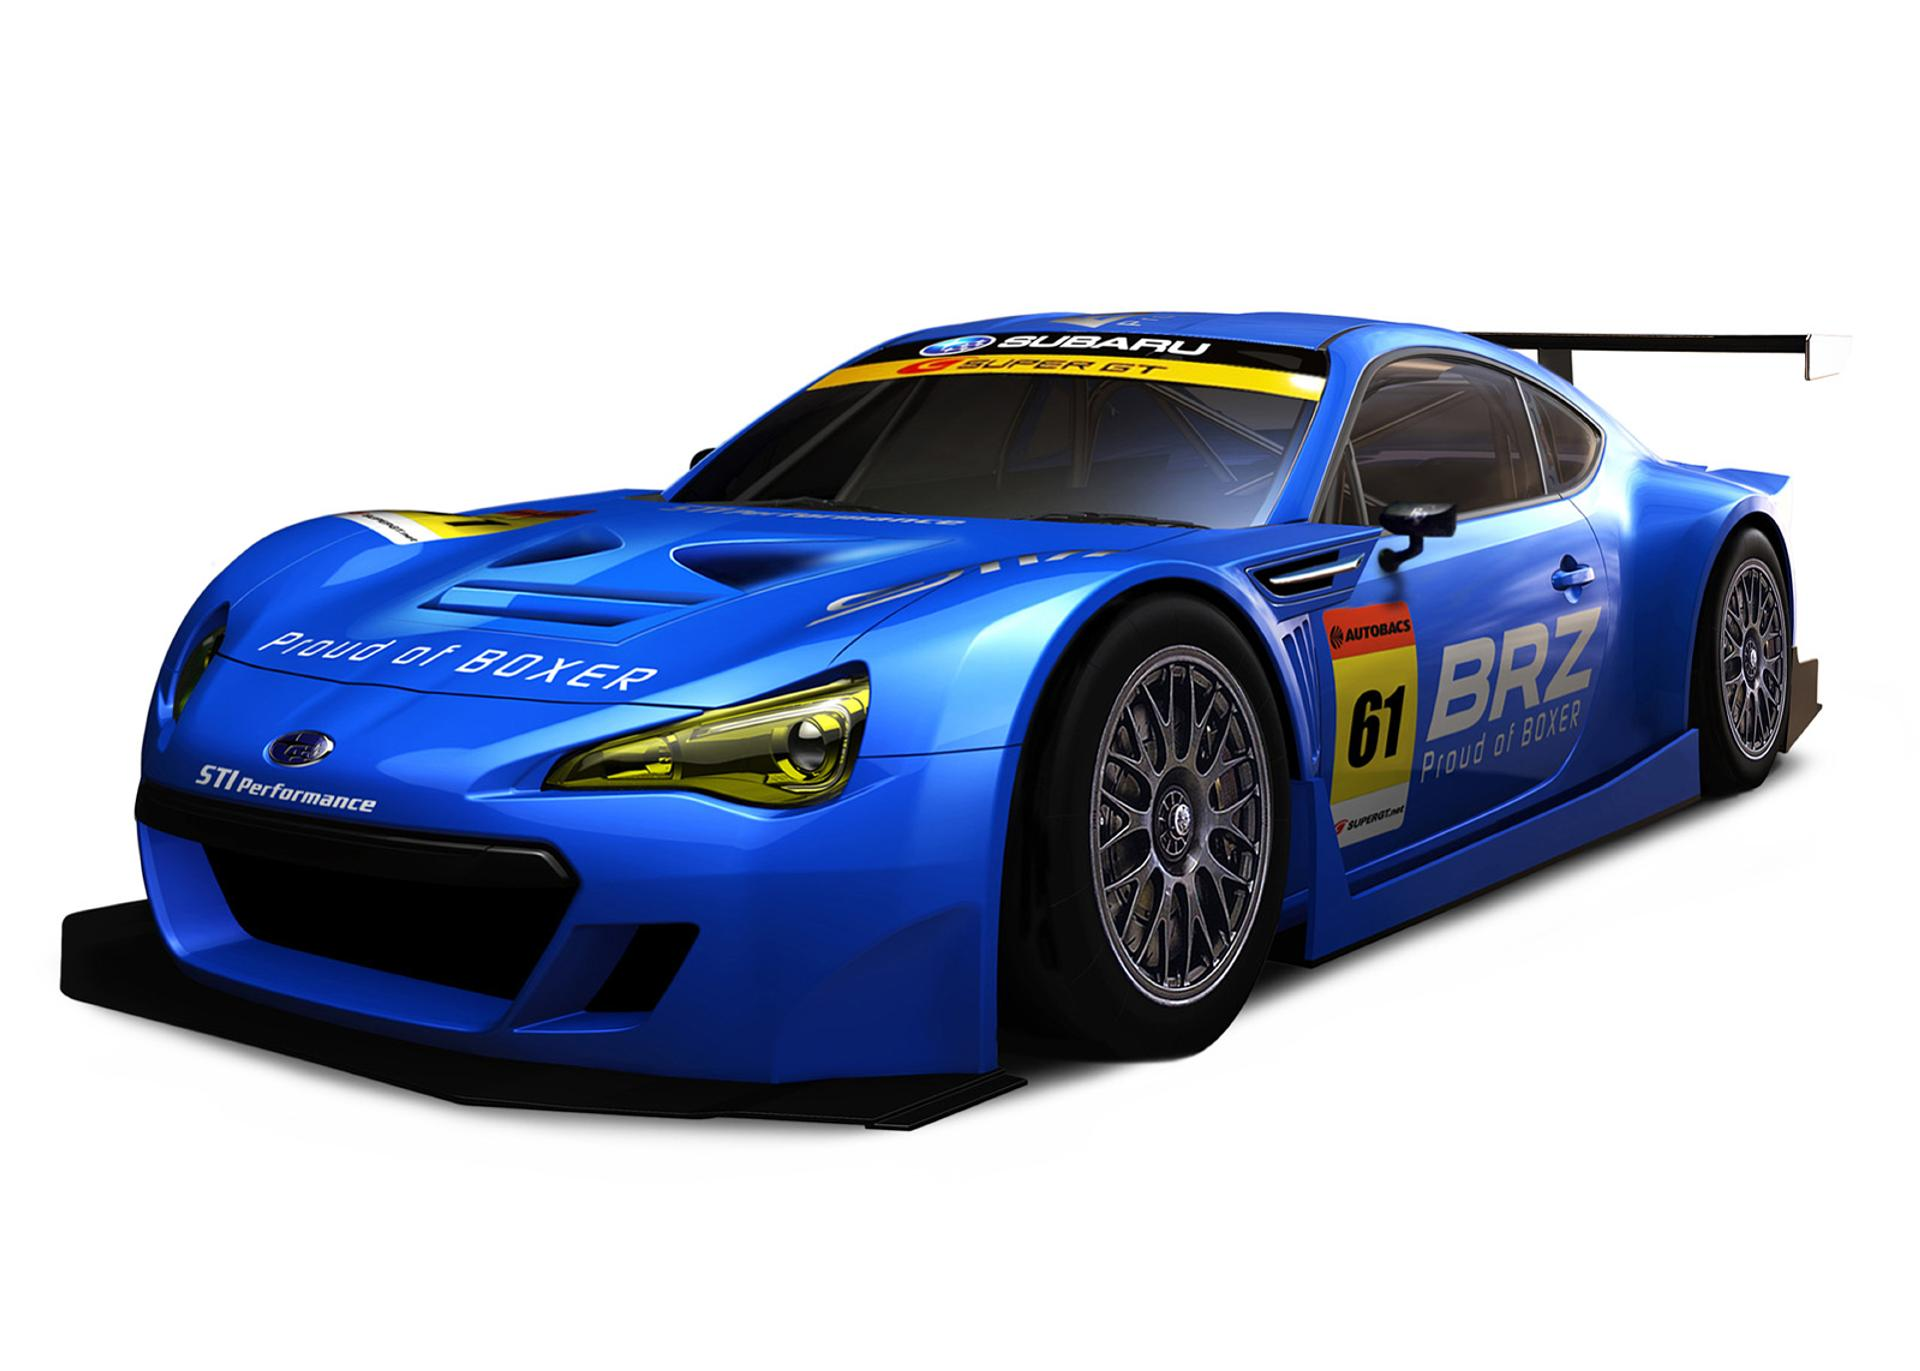 2012 Subaru Brz Gt300 News And Information Research And